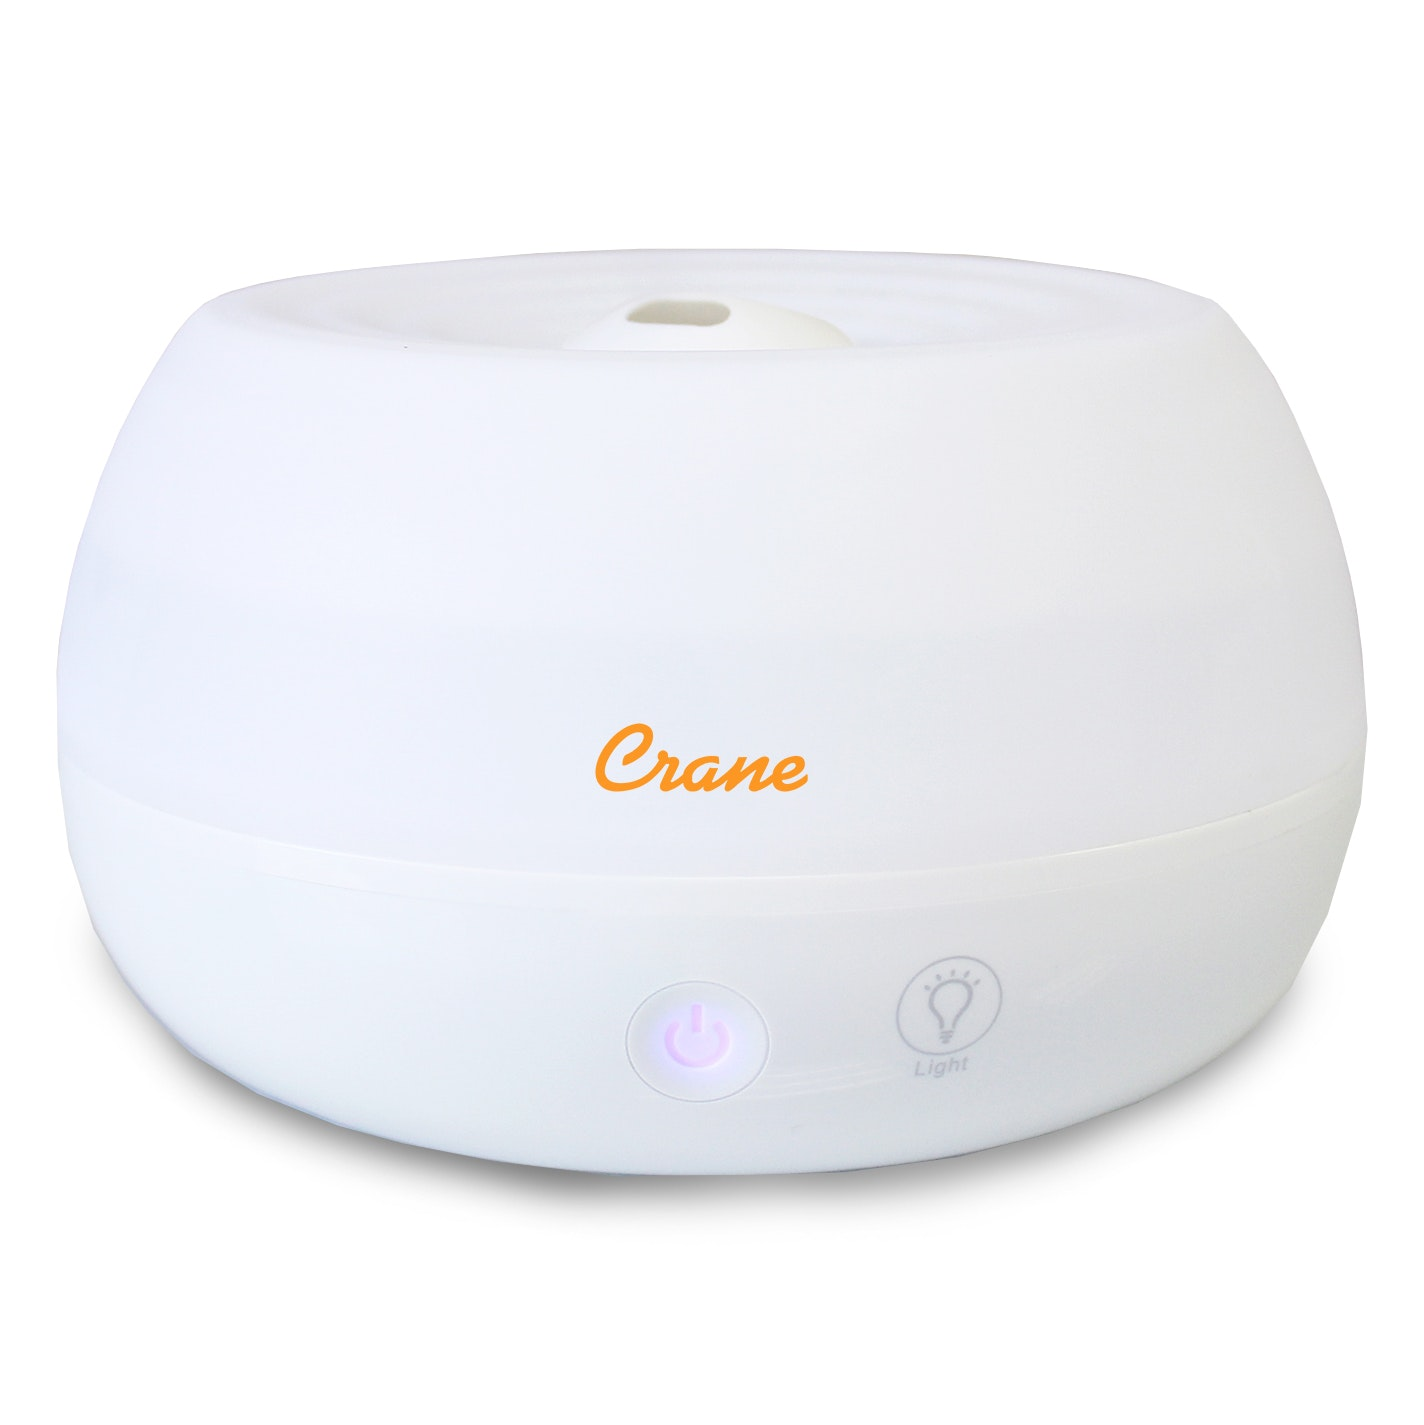 Crane USA Personal Humidifier and Aroma Diffuser (2-in-1)